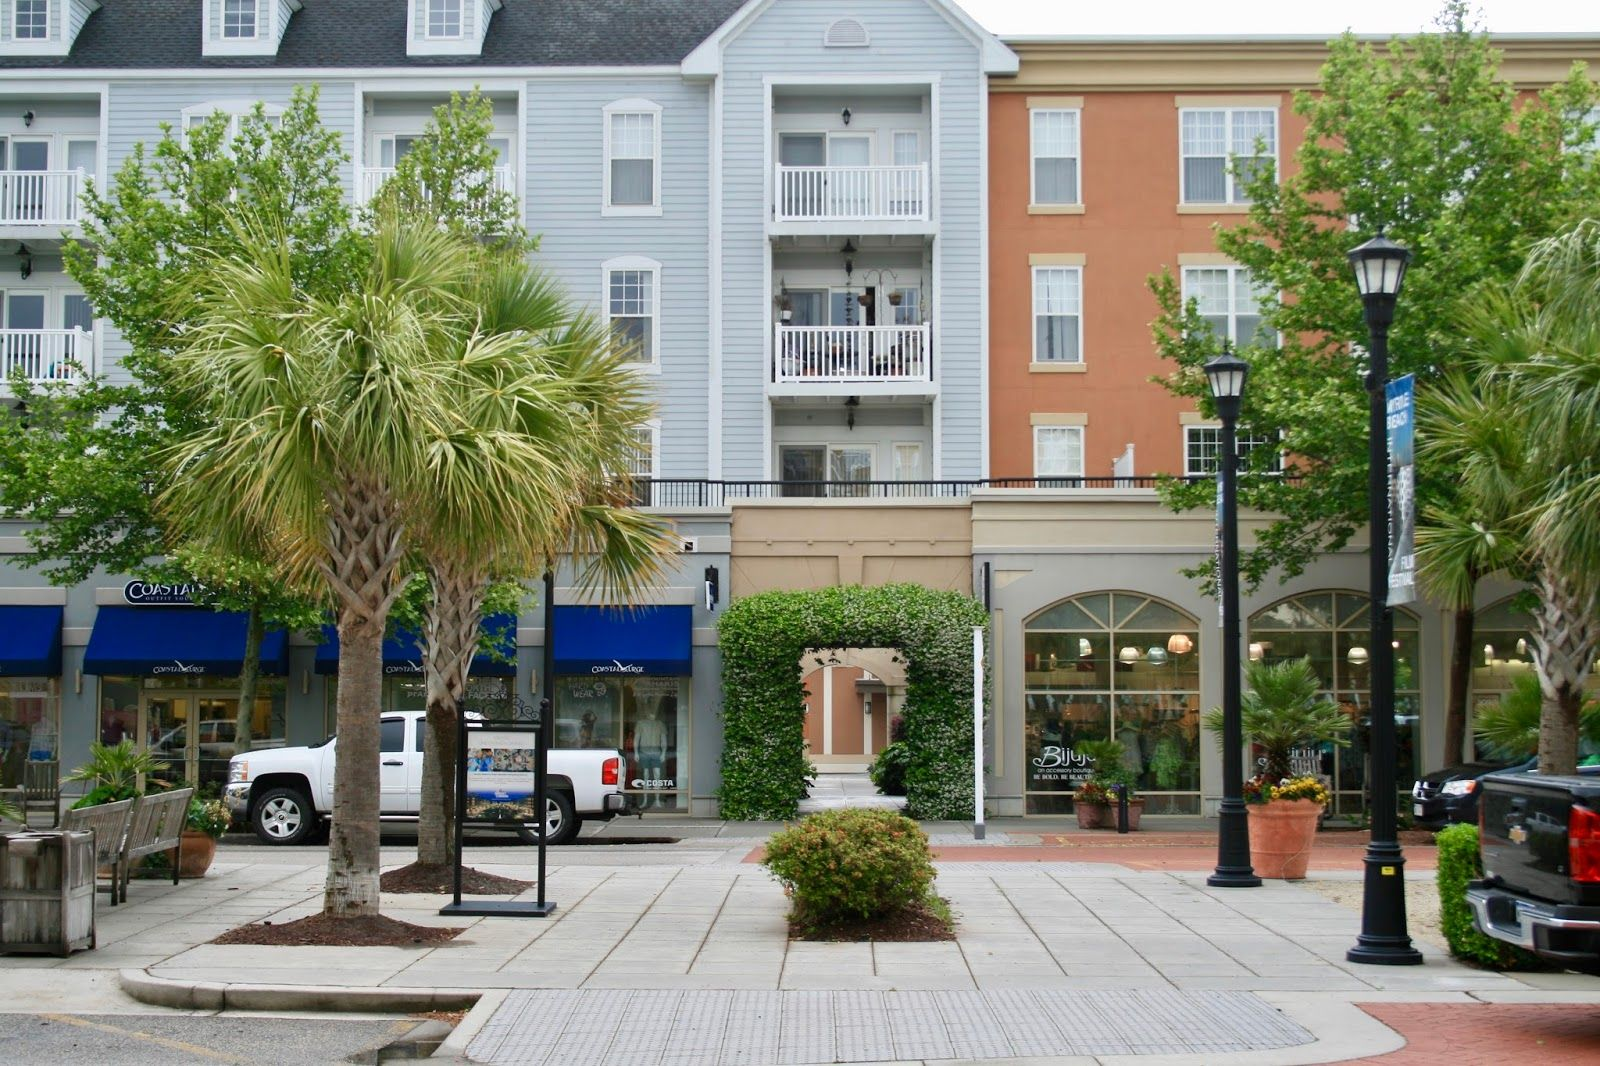 The Market Commons at Myrtle Beach, SC Market commons